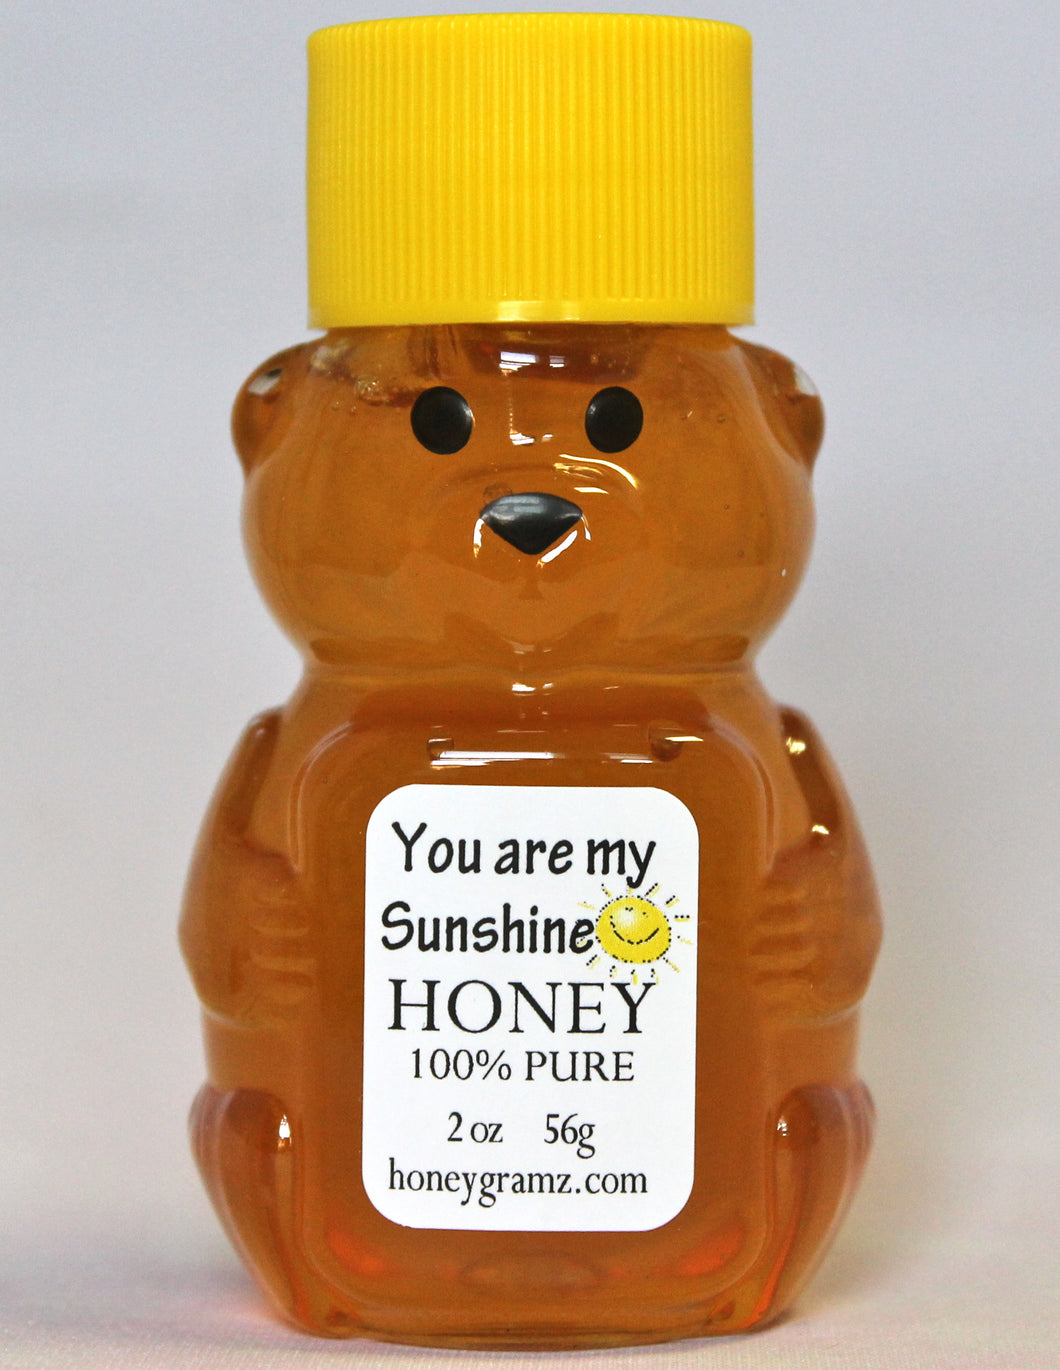 Your Are My Sunshine Honey